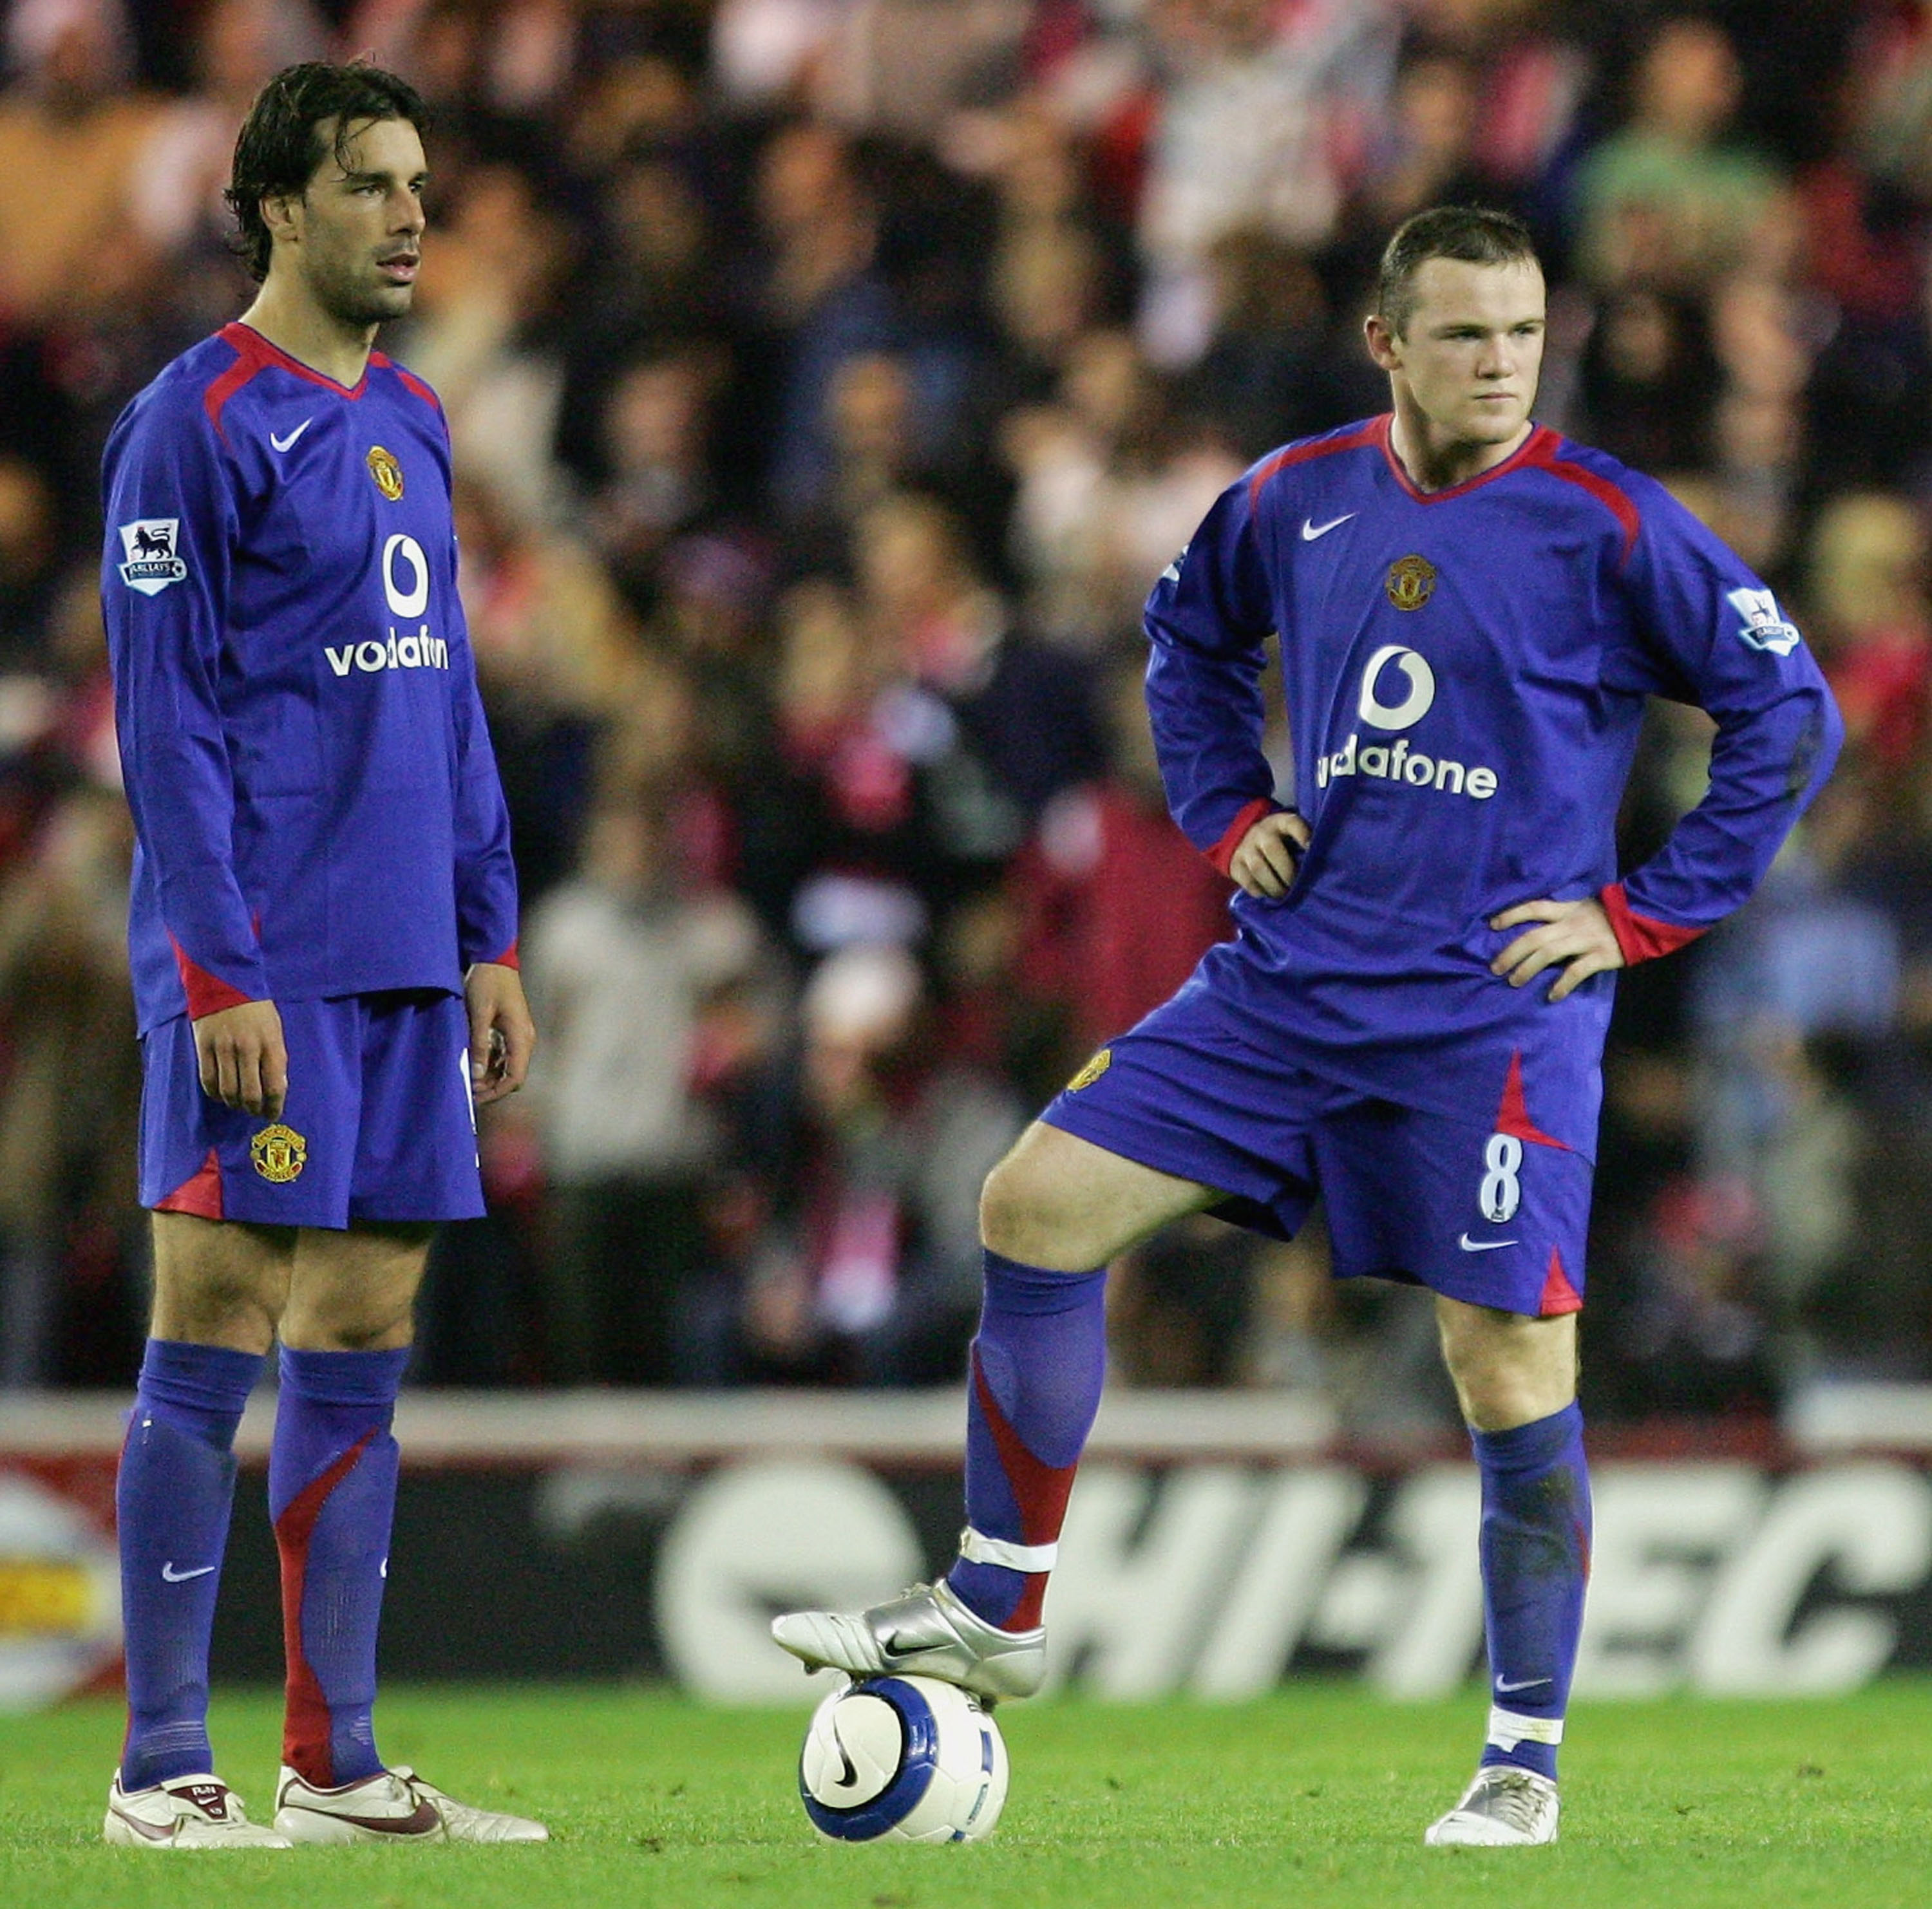 MIDDLESBROUGH, UNITED KINGDOM - OCTOBER 29: Ruud Van Nistelrooy and Wayne Rooney of Manchester United show their frustration during the Barclays Premiership match between Middlesbrough and Manchester United at the Riverside Stadium on October 29, 2005 in